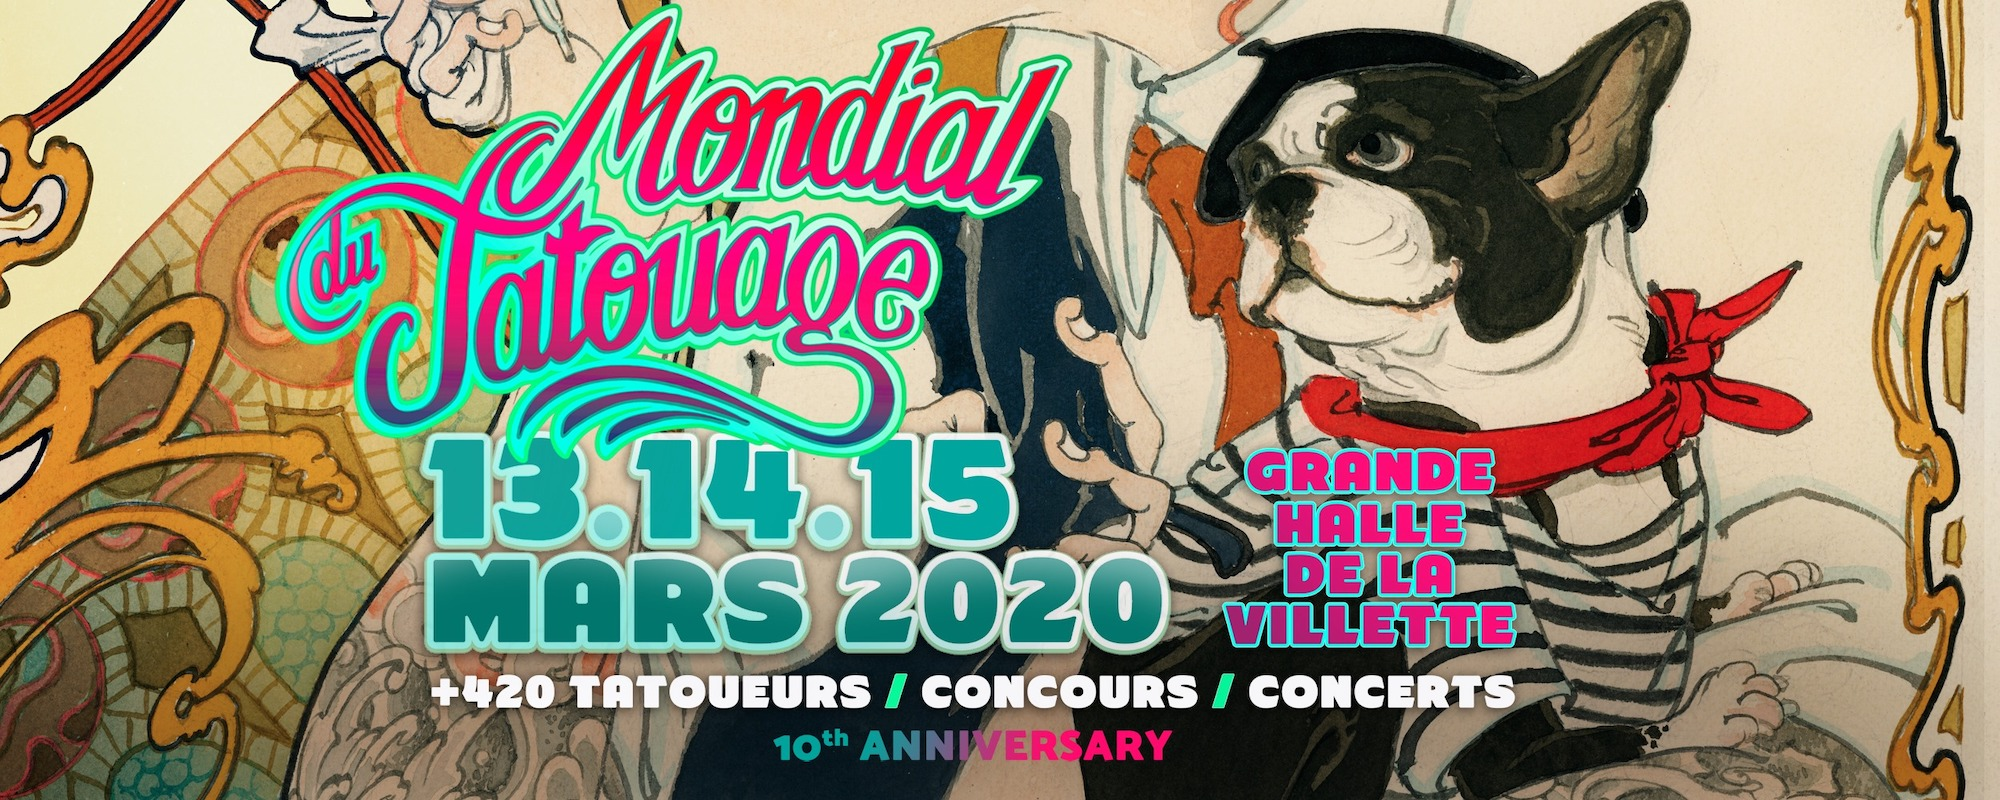 Banner for major tattoo event  in Paris in March.